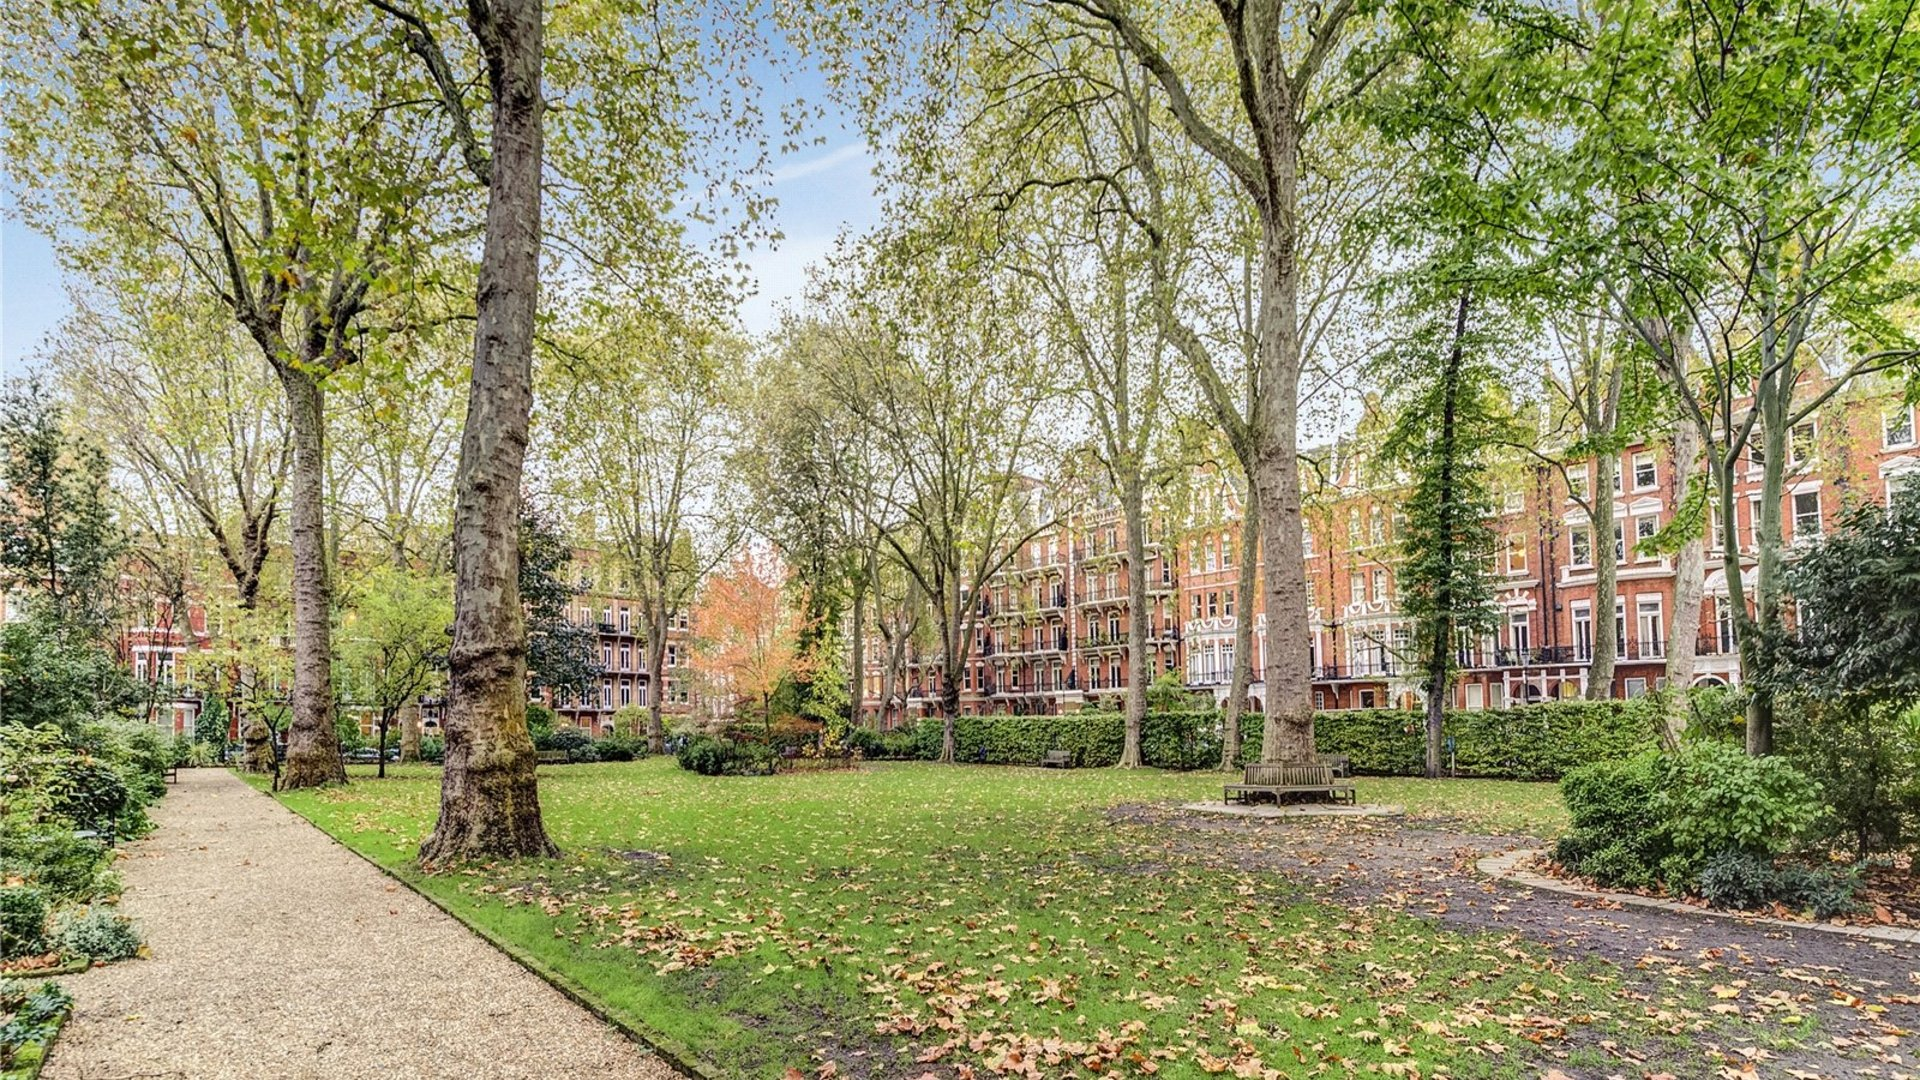 Bramham Gardens, Earls Court, London